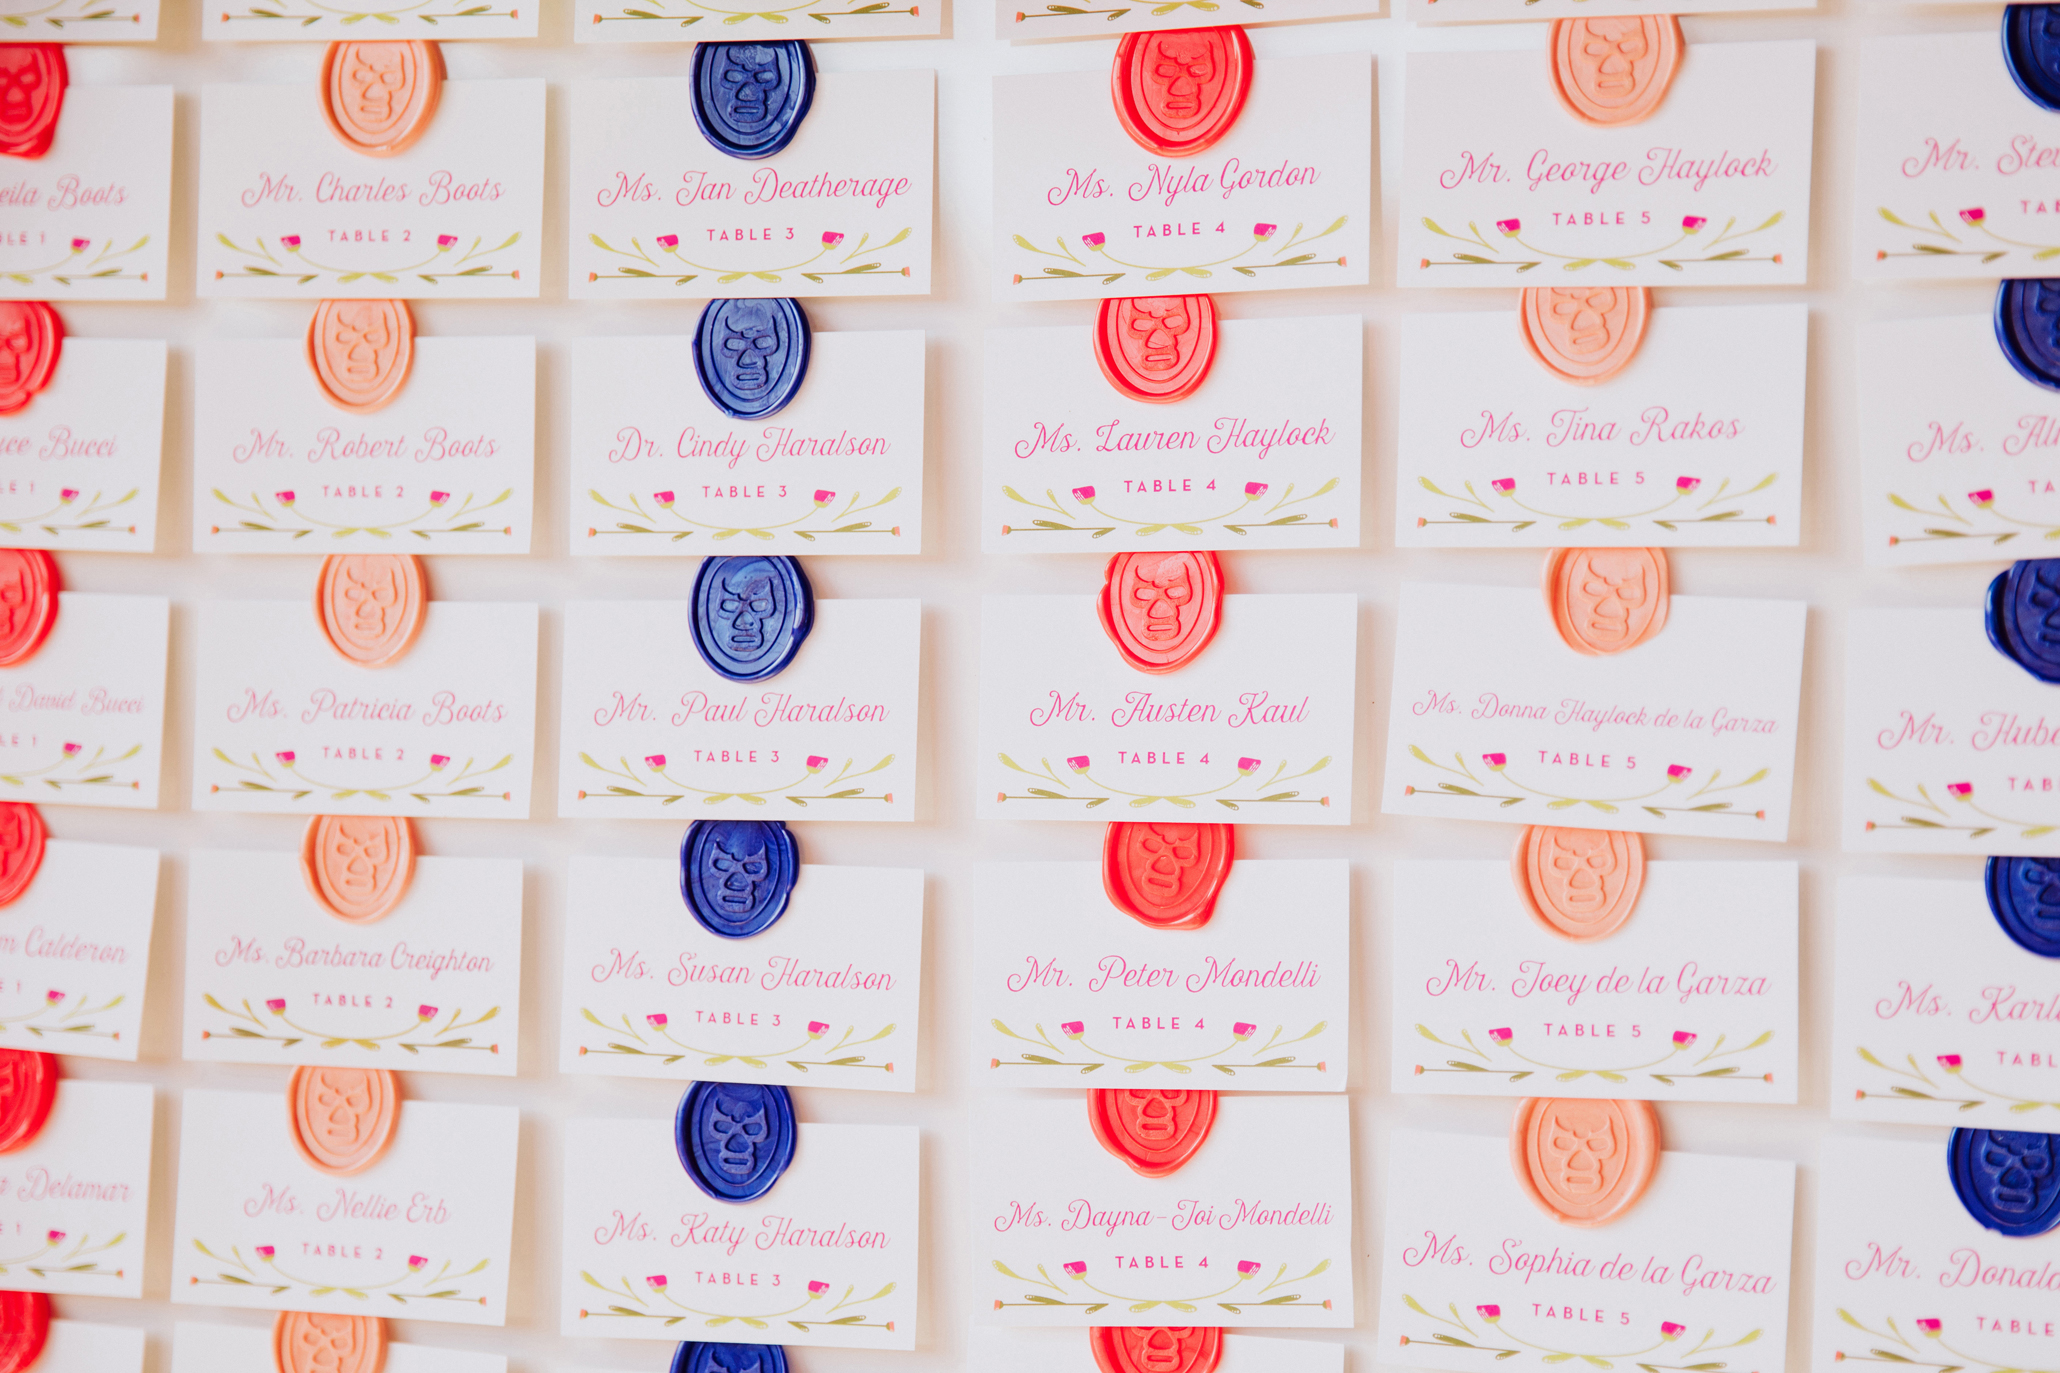 wax seal escort card chart, with fun bright colors